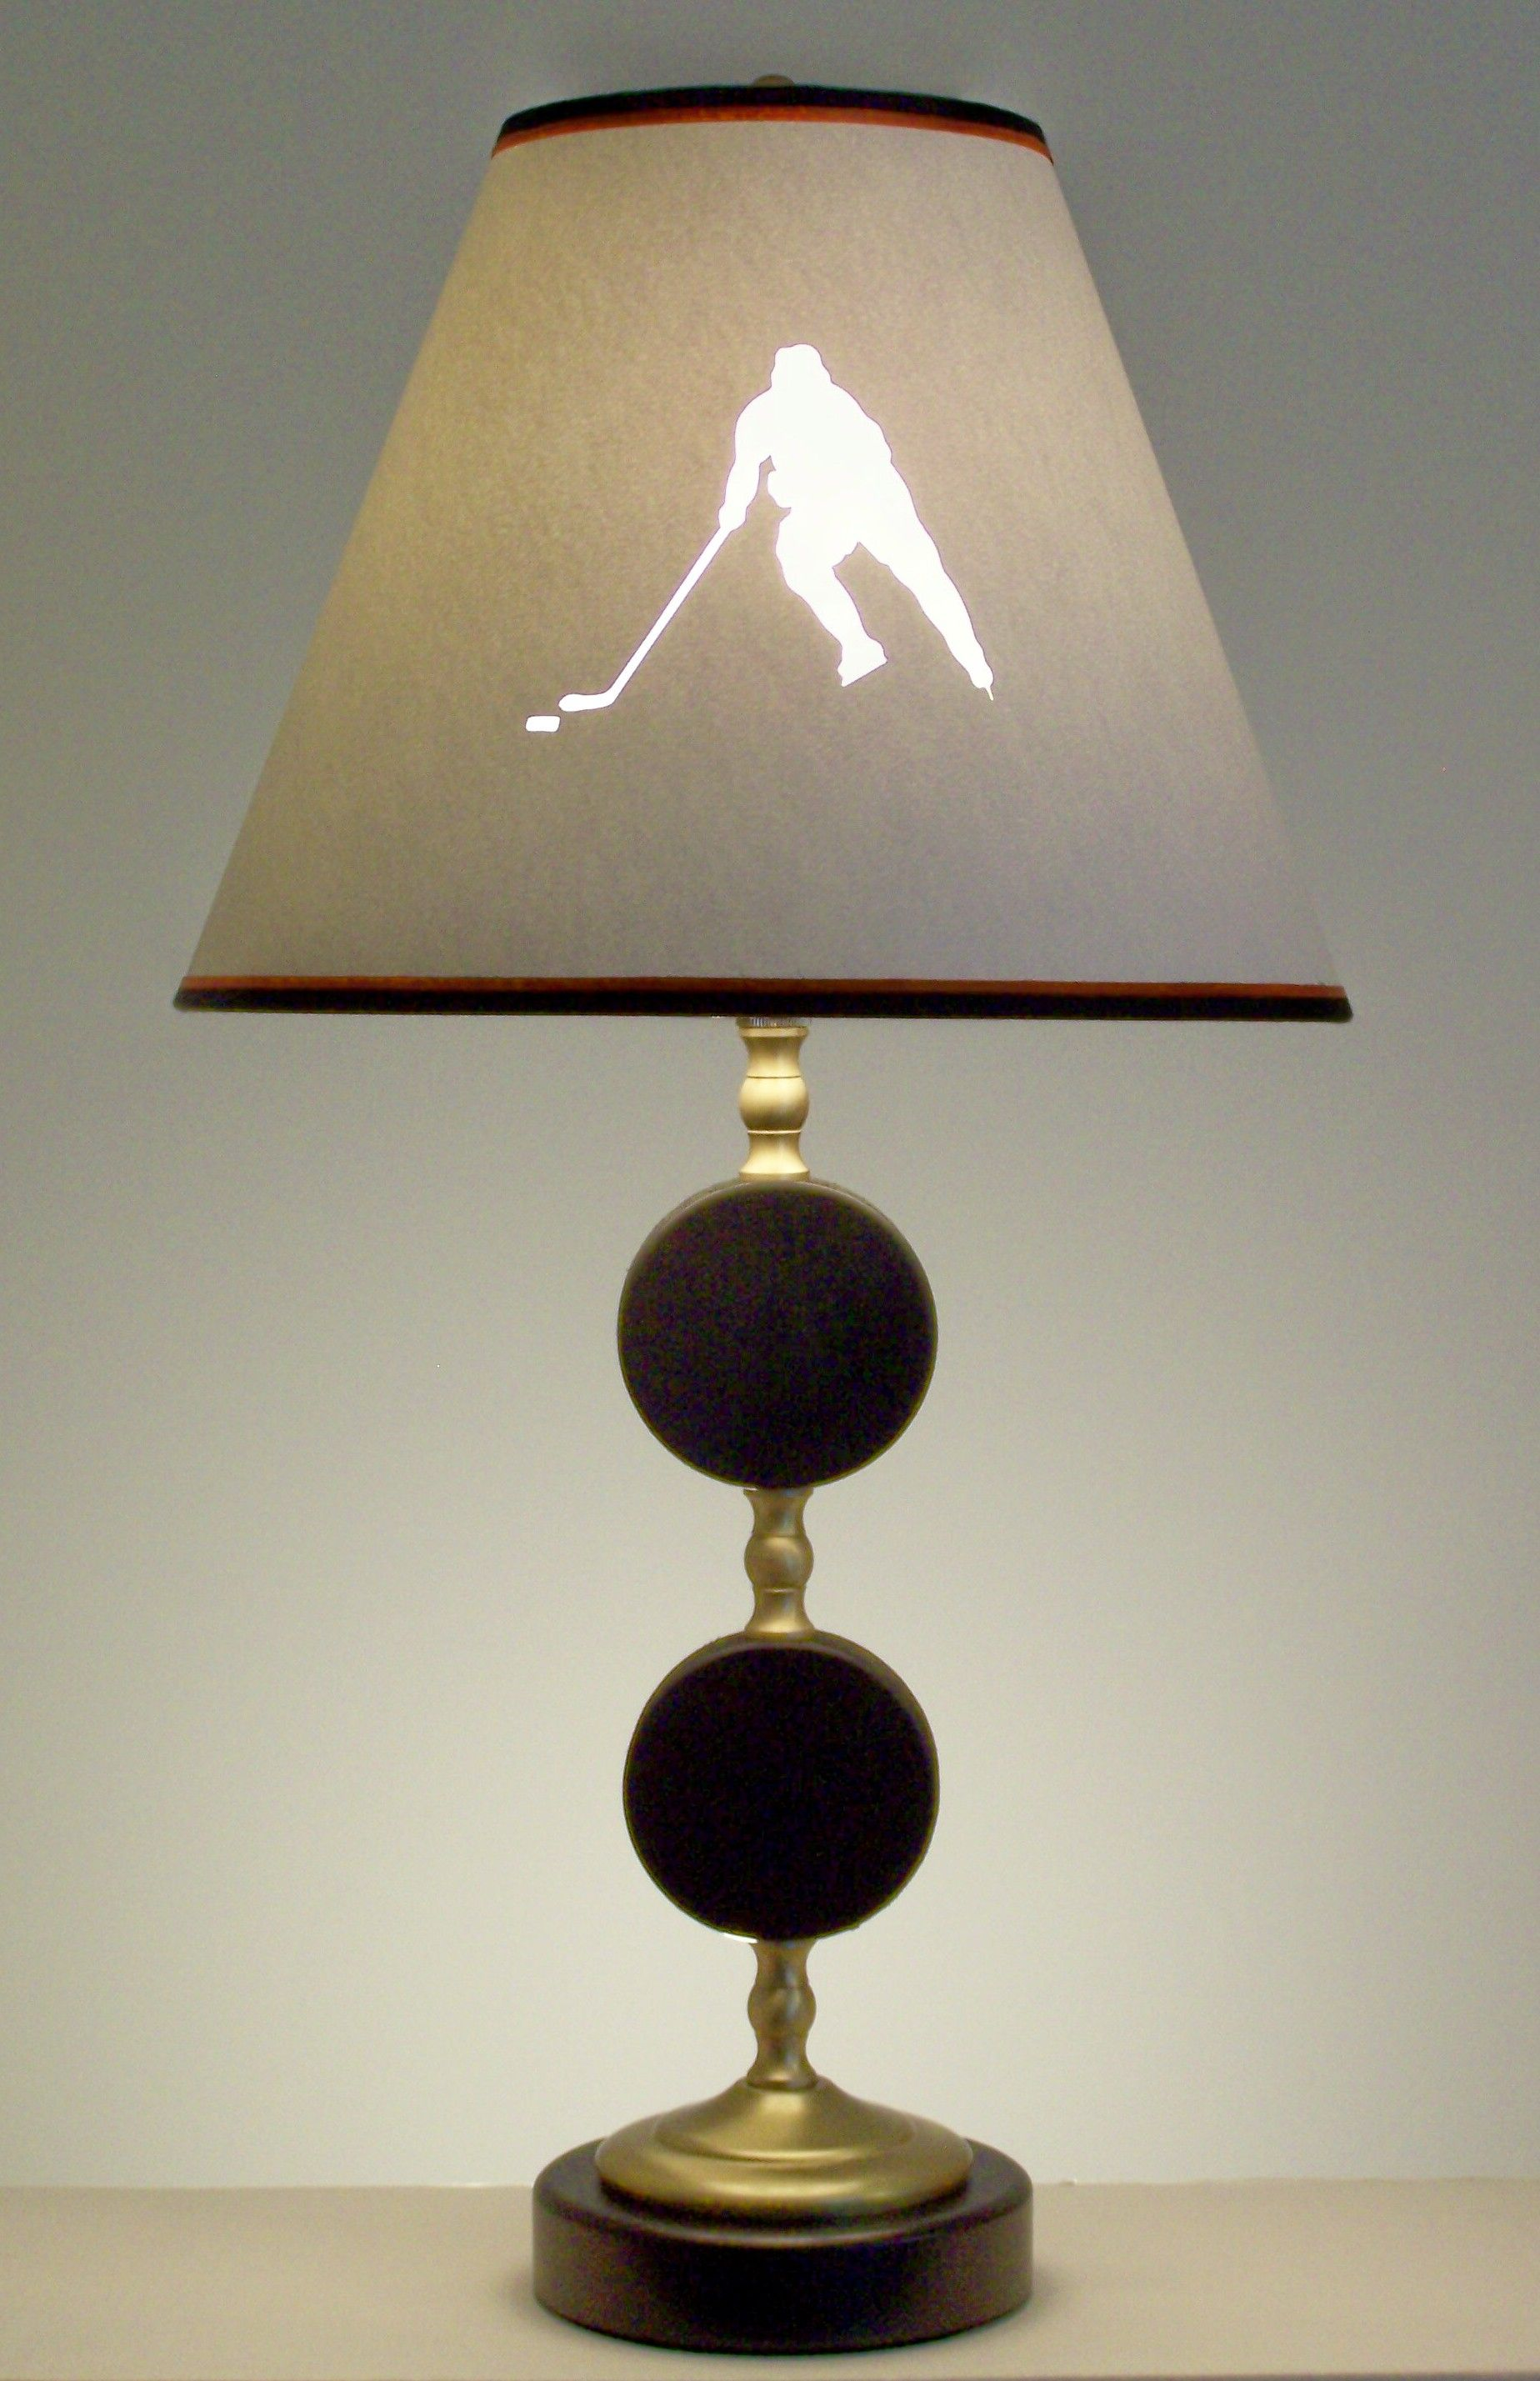 Hockey Puck Lamp With Player Silhouette Shade